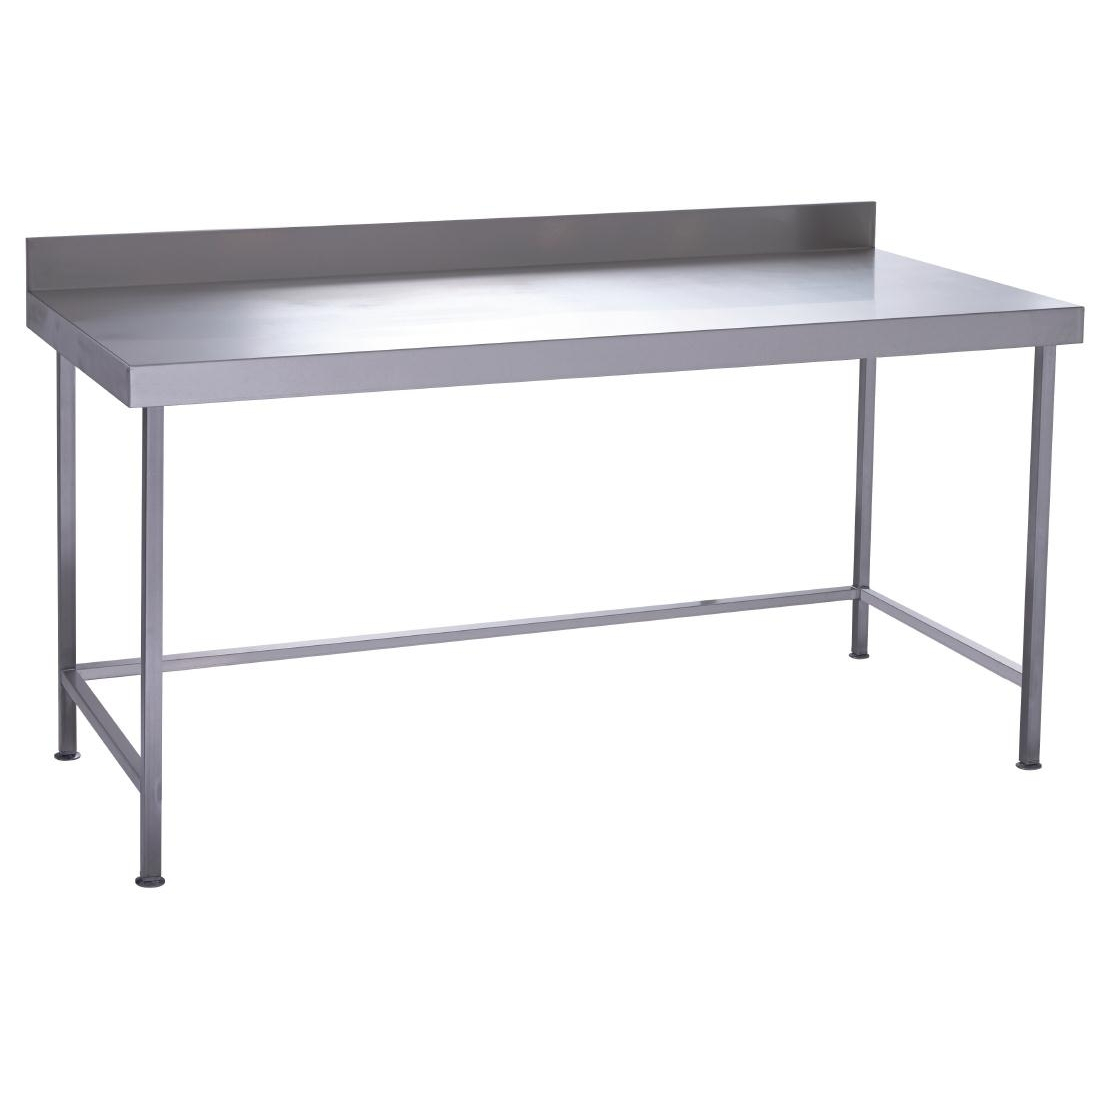 Parry Fully Welded Stainless Steel Wall Table 1500x600m